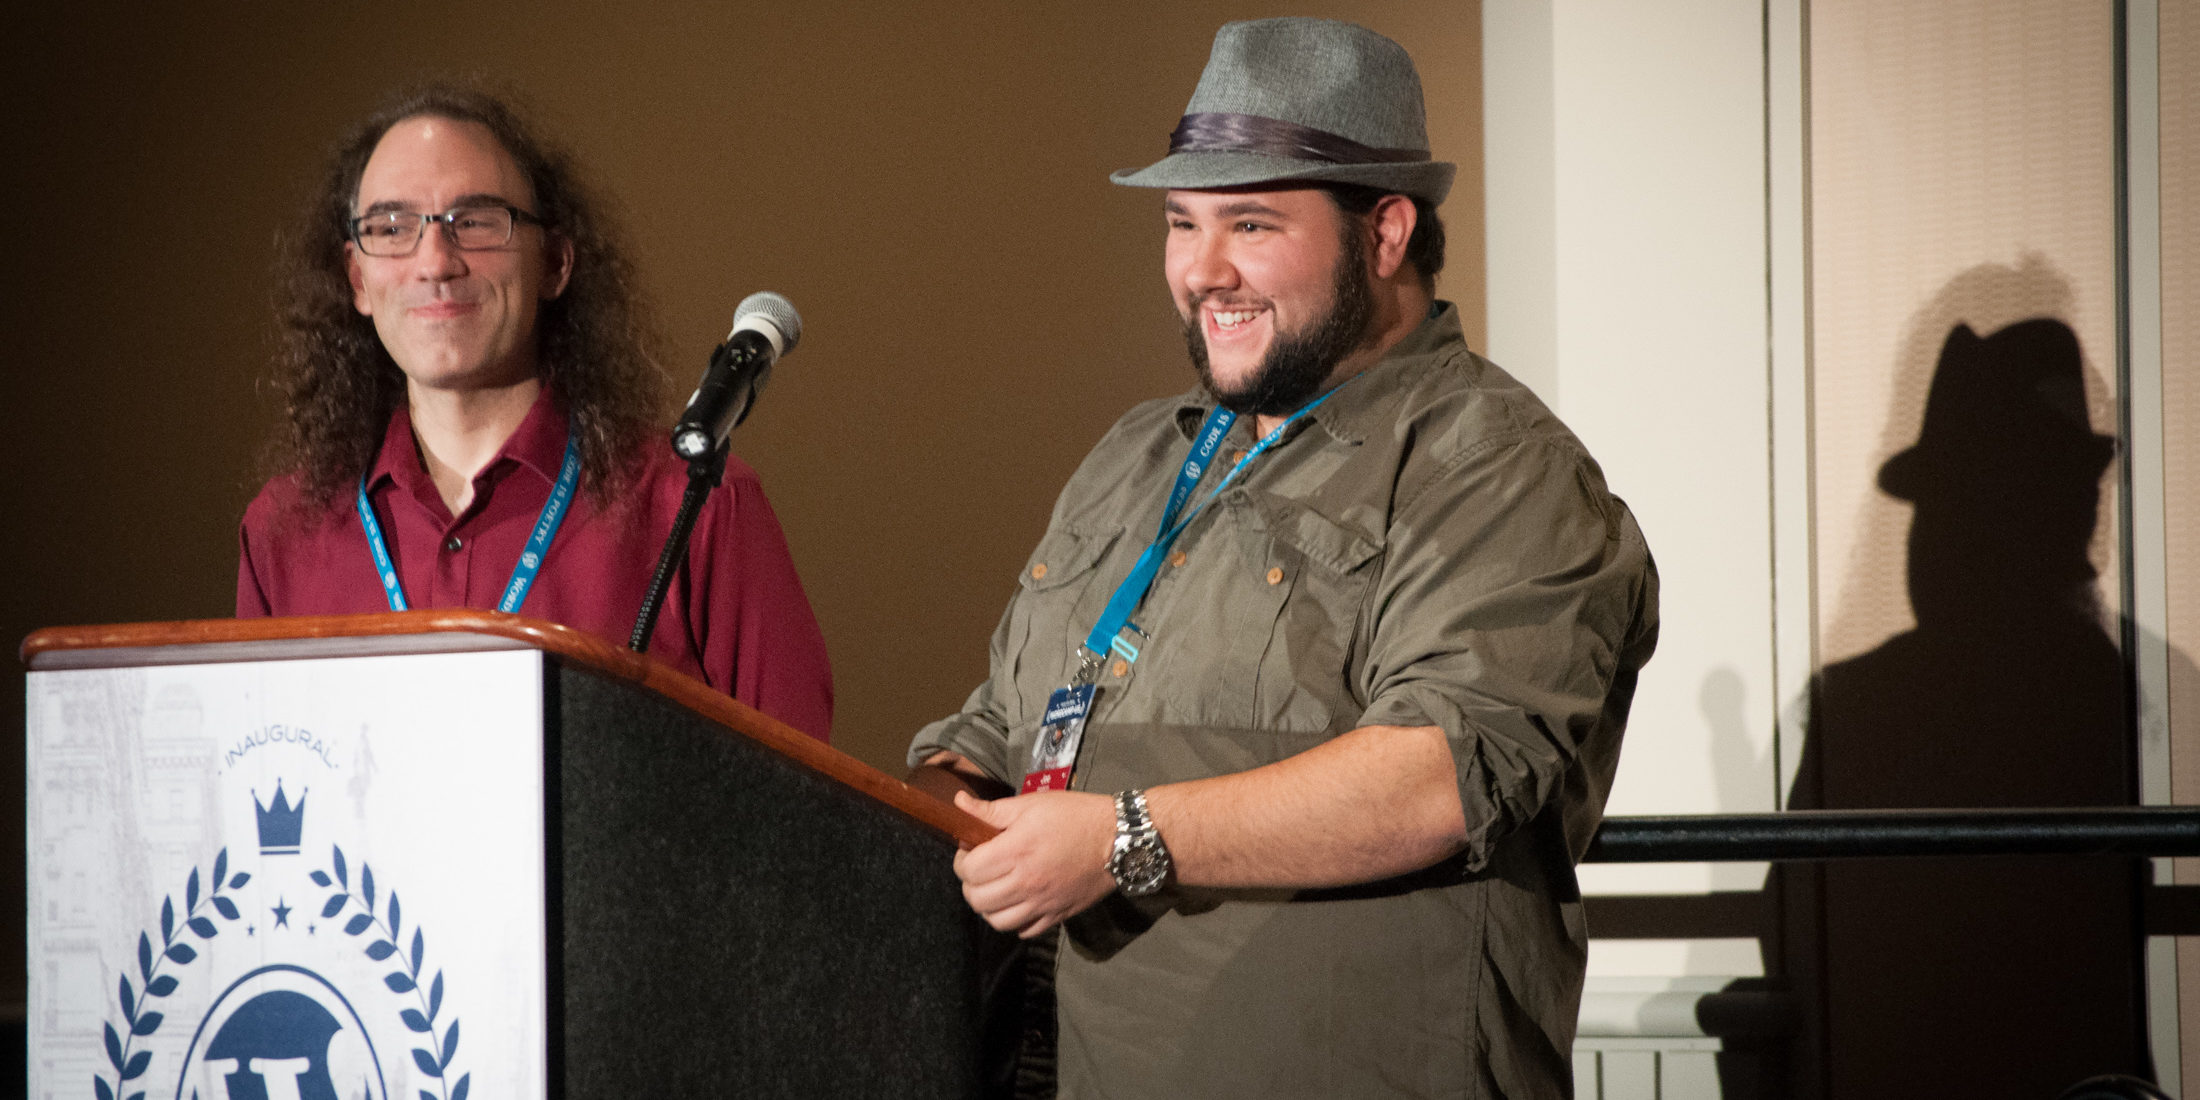 Joe Casabona speaks on Never Assuming When Teaching WordPress, at WordCamp US 2015 #wcus